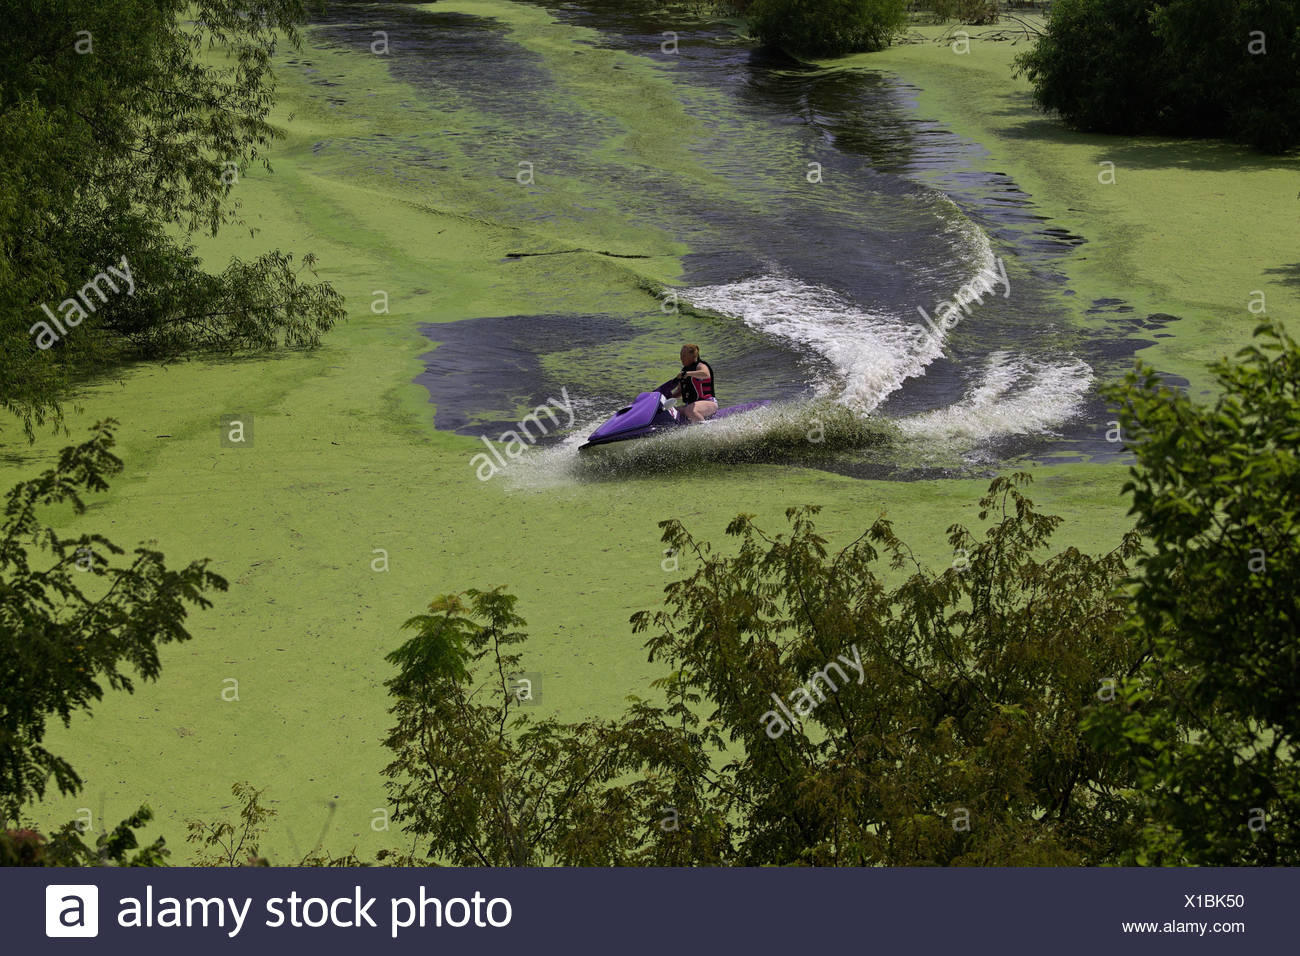 Woman rides a jet ski on a cove of Milford Lake, Kansas  that has a large algae bloom. - Stock Image